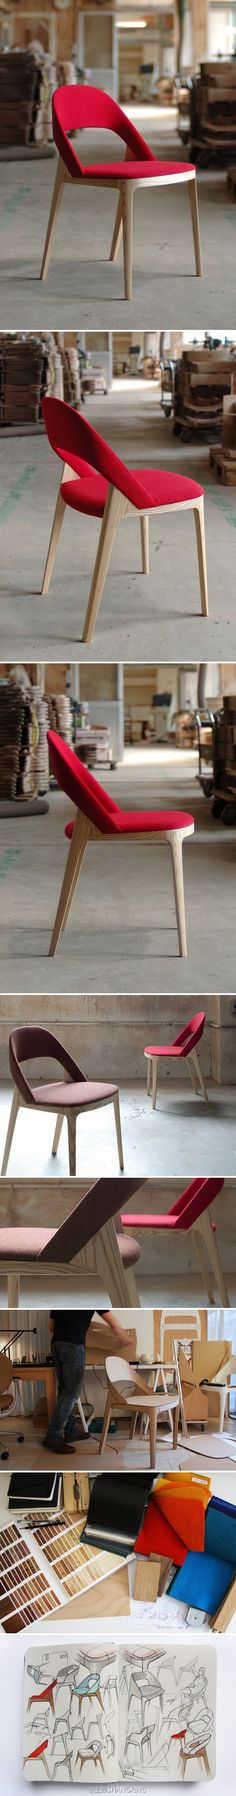 Clamp Chair | http://www.andreaskowalewski.com/ #pin_it #design @mundodascasas See more here: www.mundodascasas.com.br